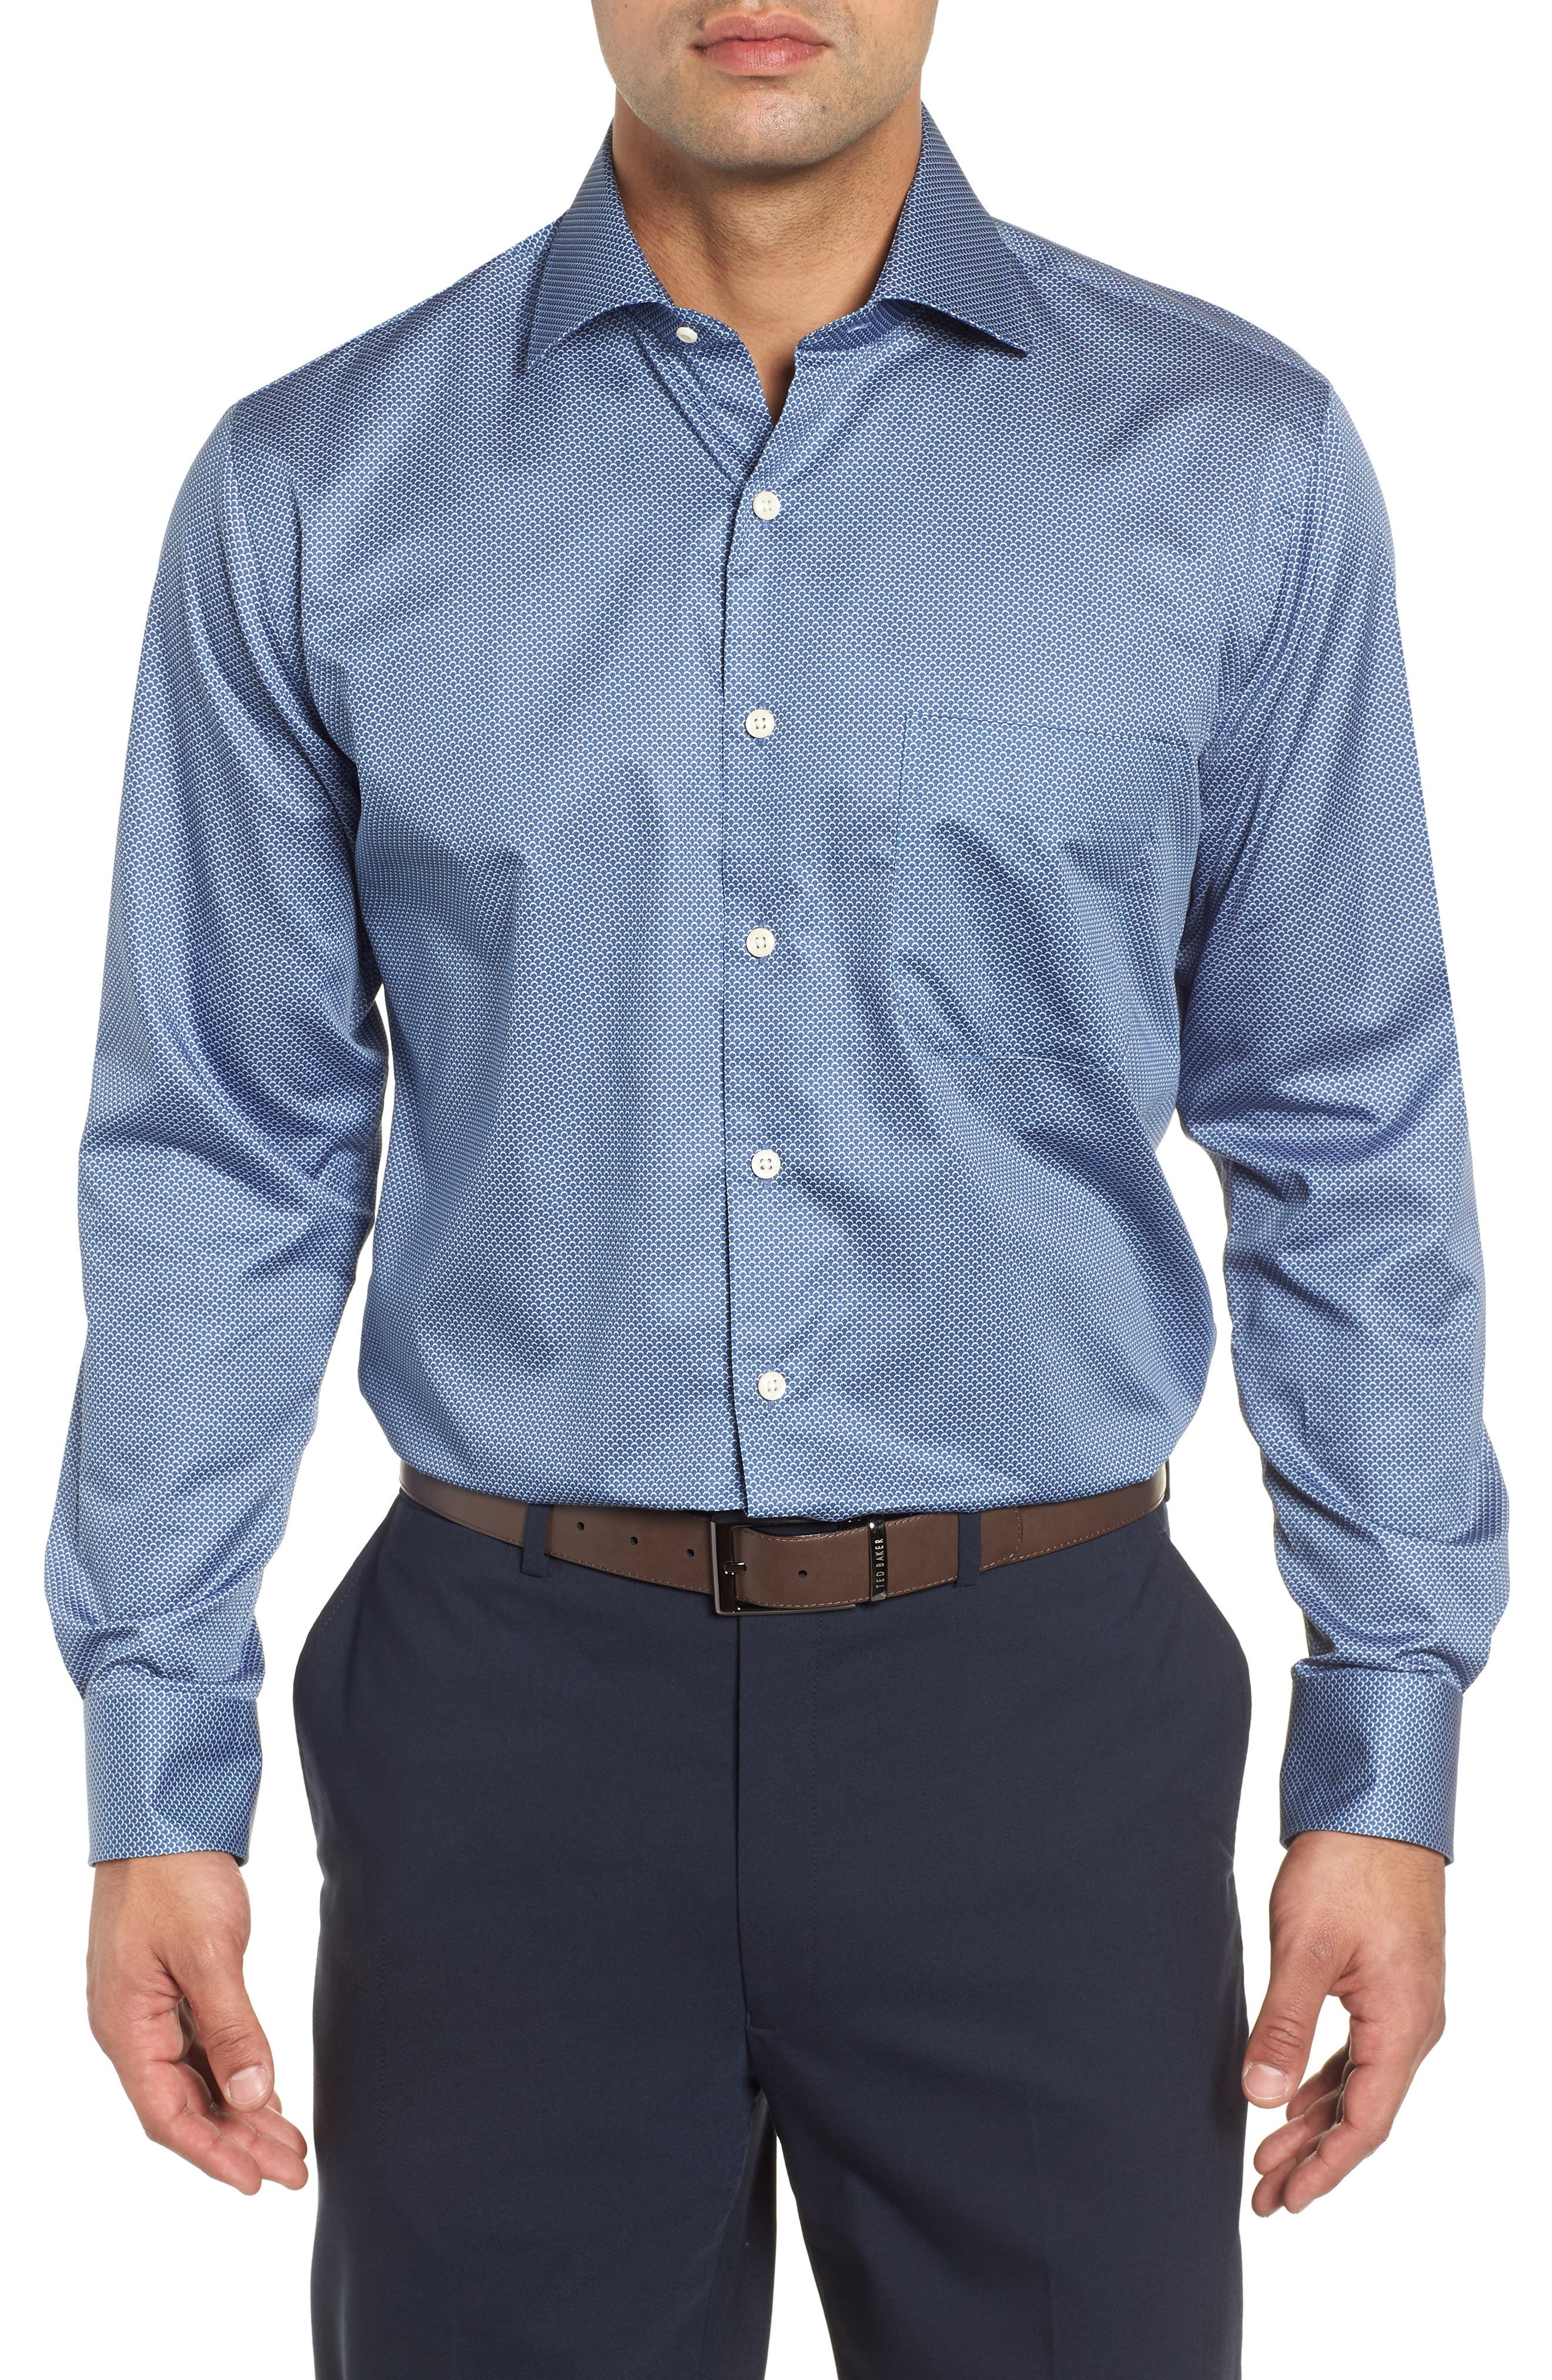 Off the Scale Sport Shirt,                         Main,                         color, YANKEE BLUE